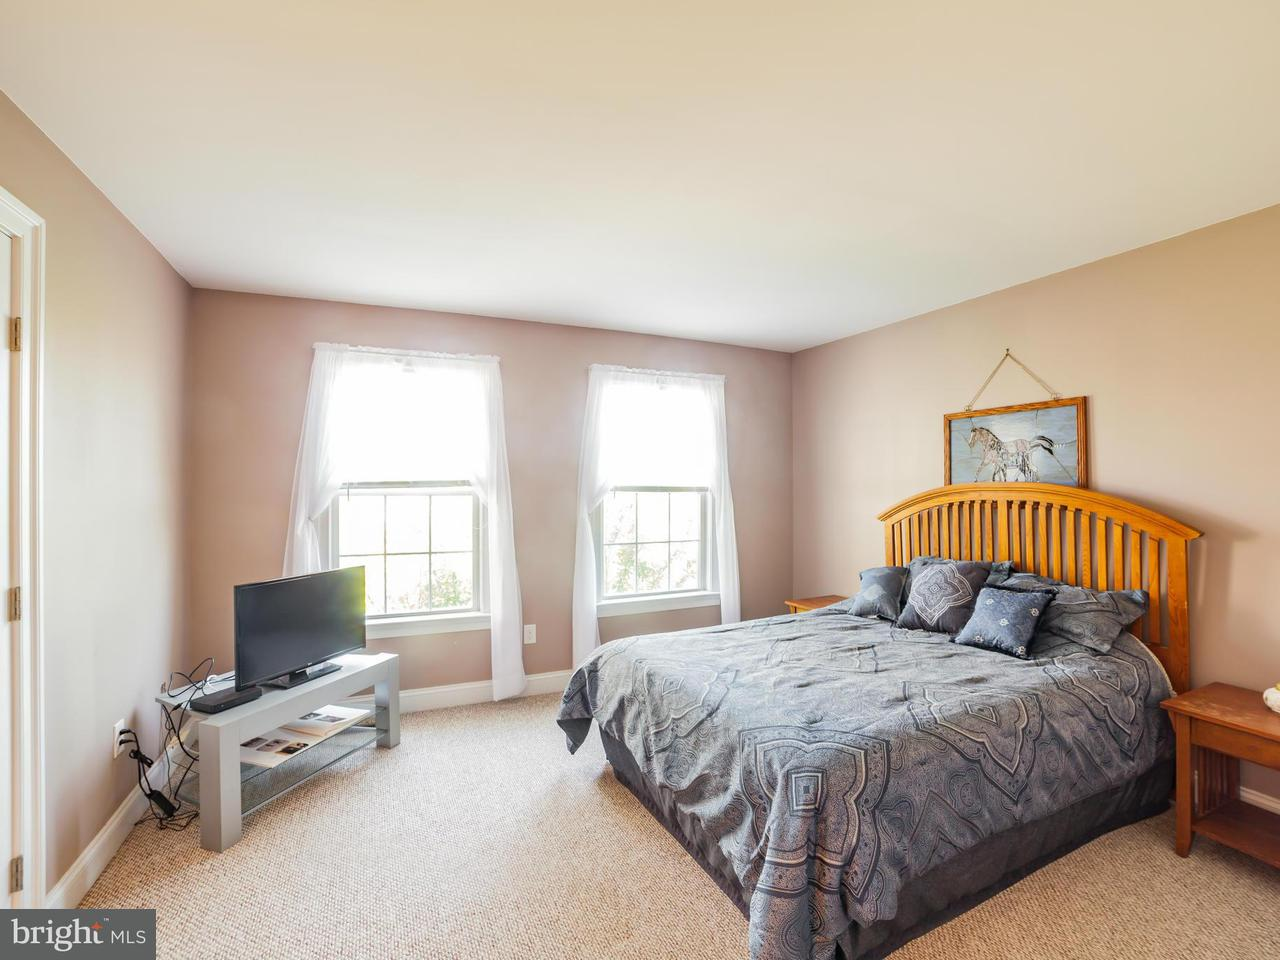 Additional photo for property listing at 279 JOE MELTZ Road 279 JOE MELTZ Road Warwick, Maryland 21912 Stati Uniti